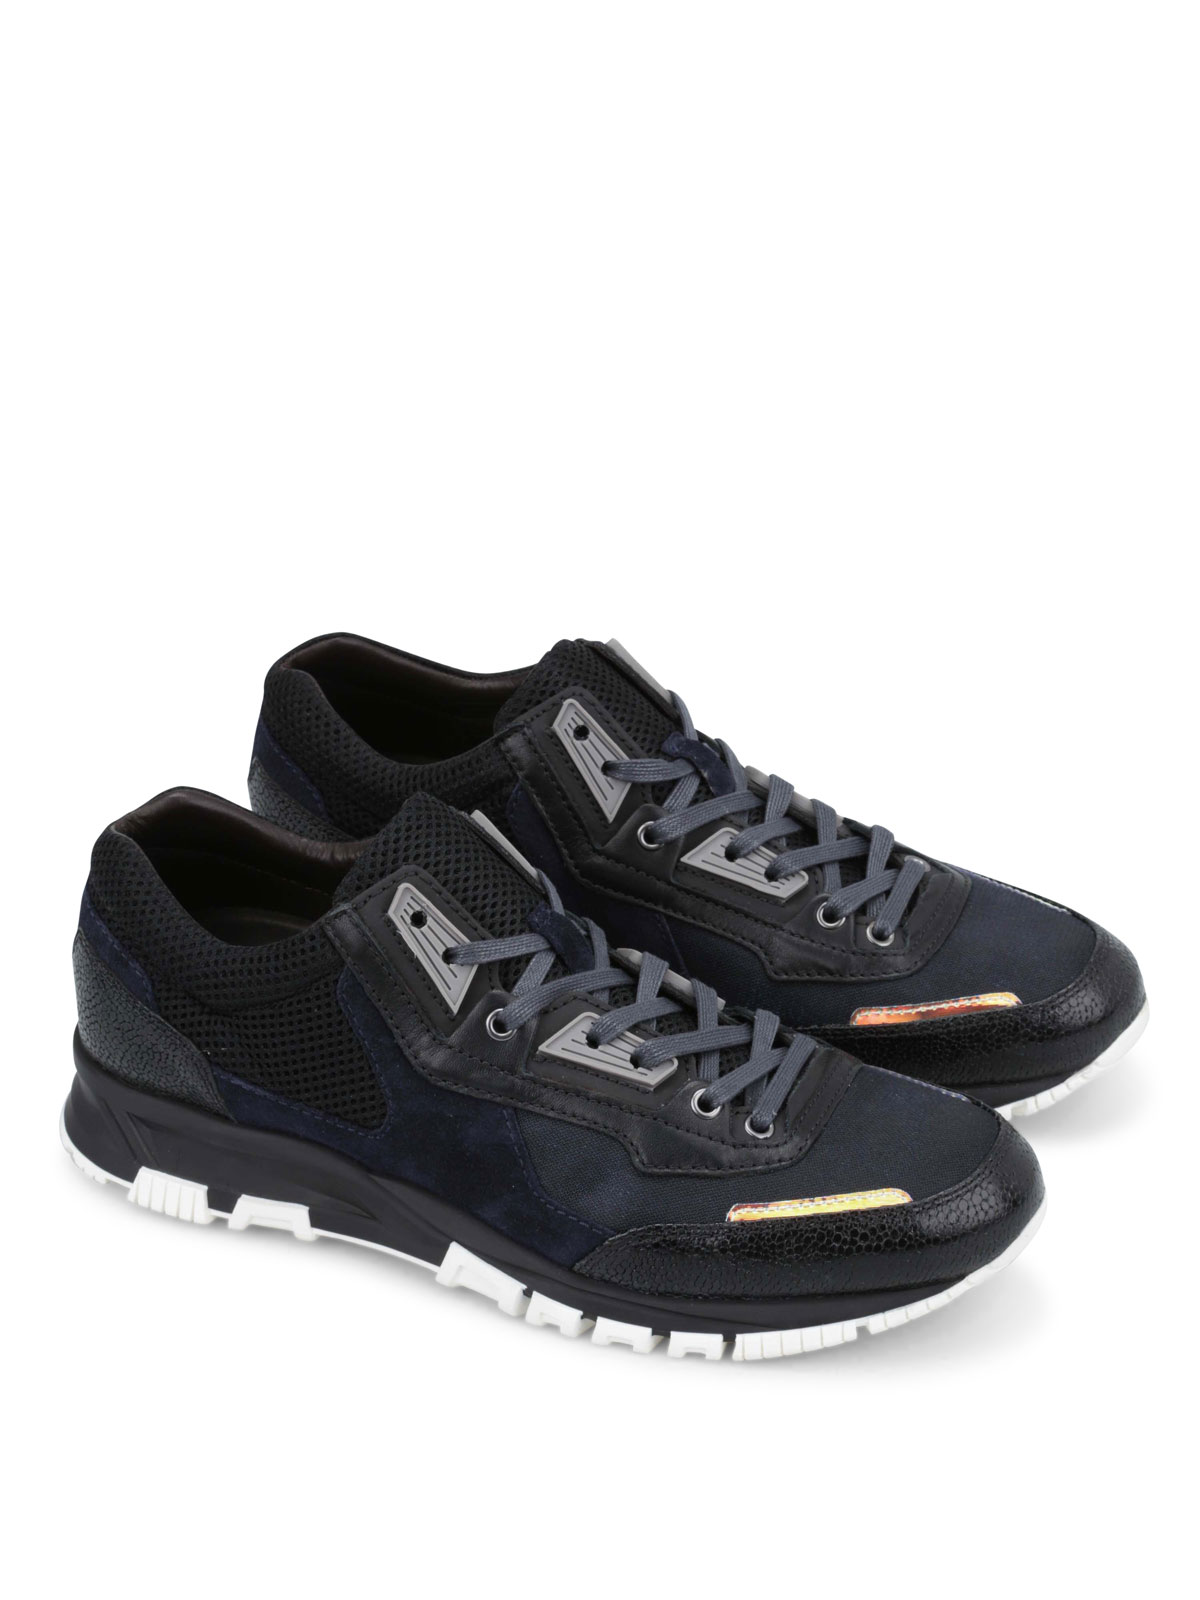 Lanvin Running Sneakers suede leather RzN90kpH